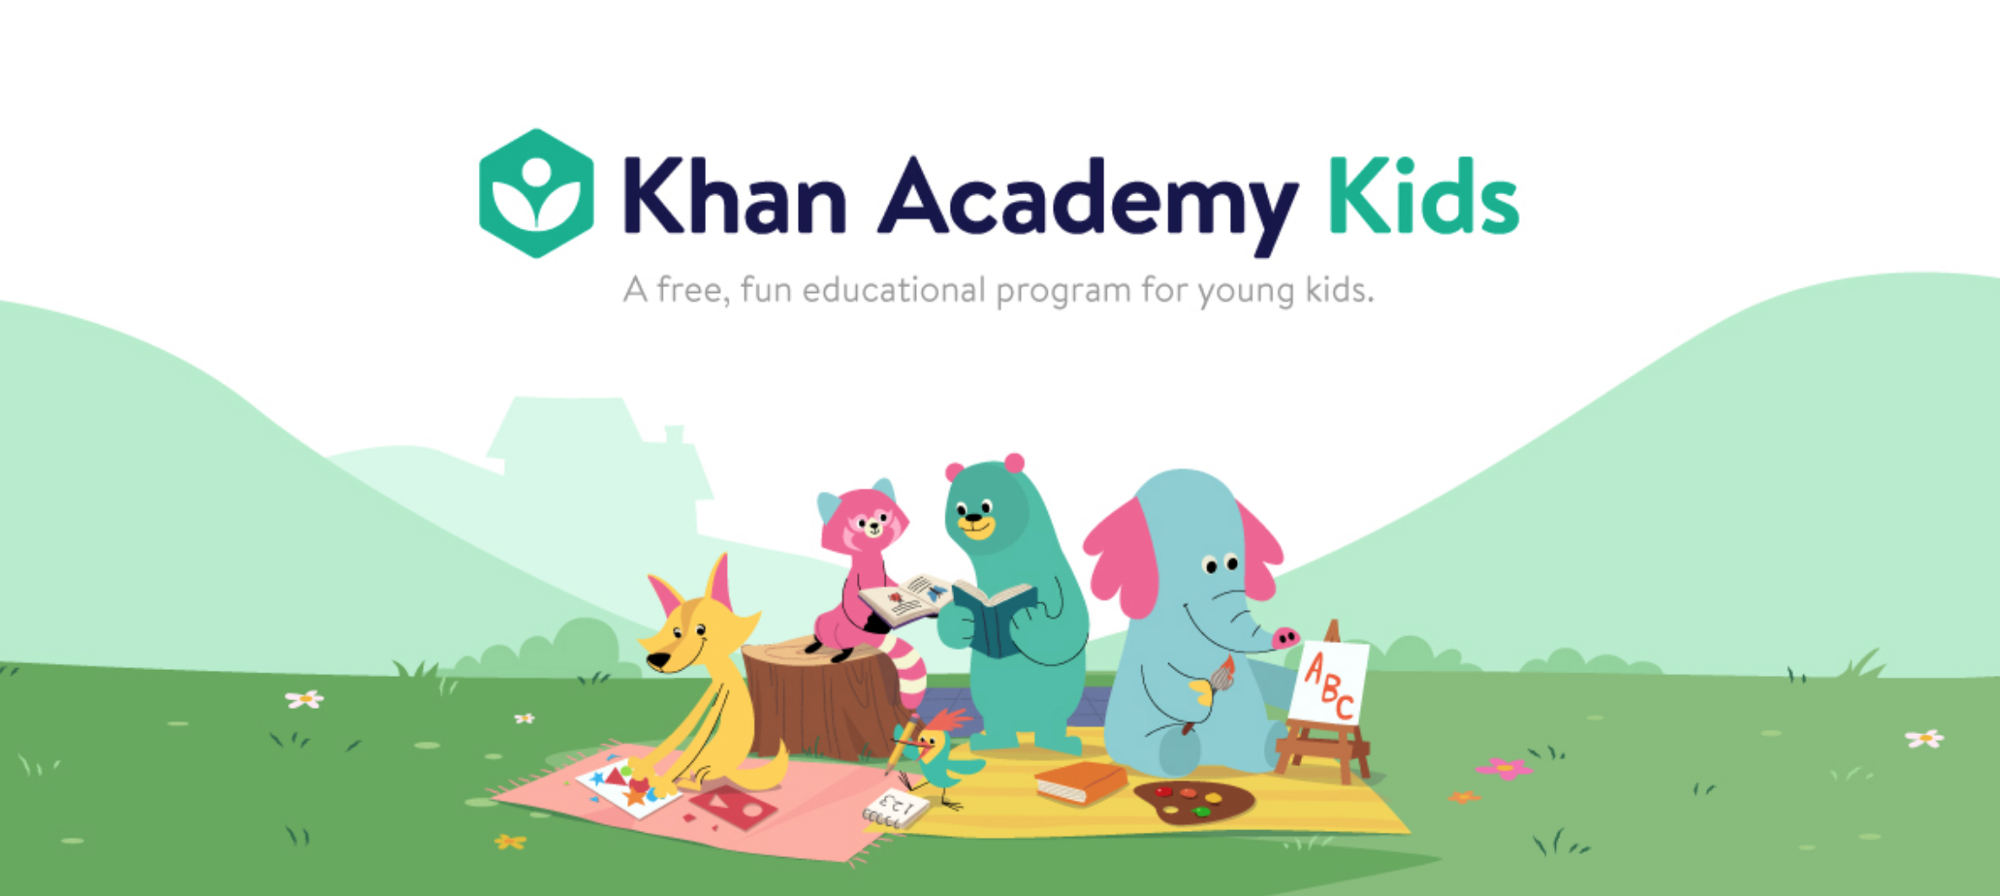 how to get to khan academy